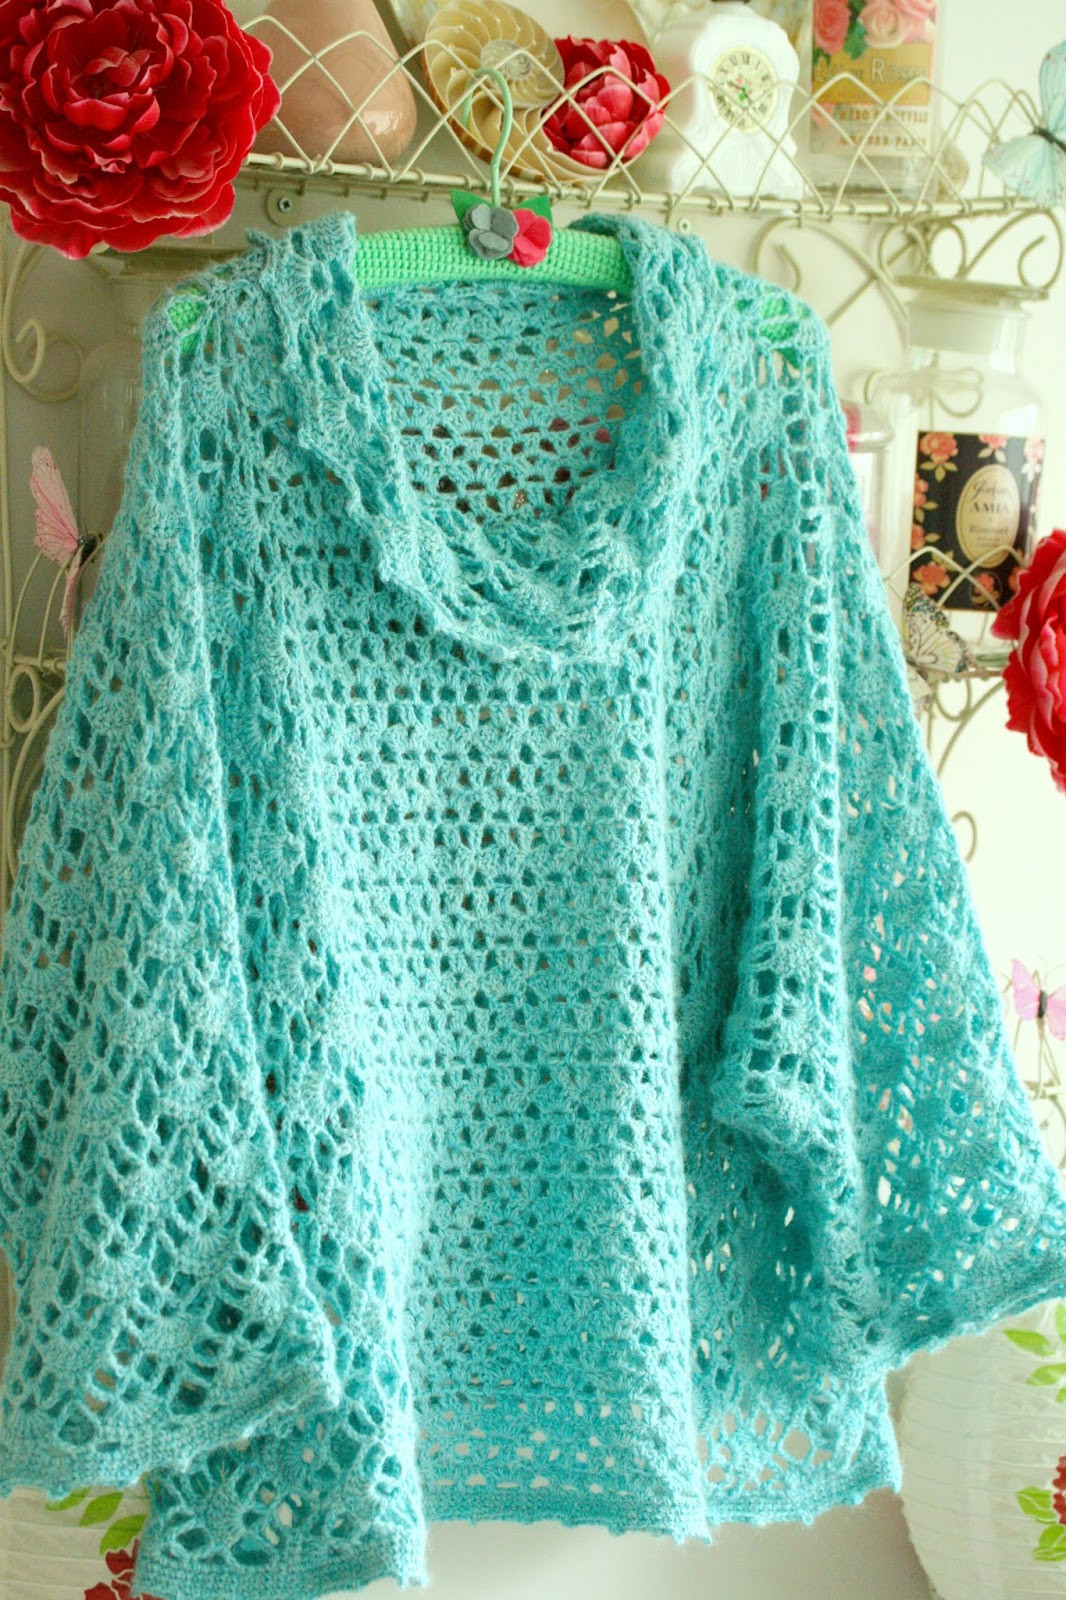 Free Poncho Patterns Awesome Little Treasures 5 Free and Fabulous Crochet Poncho Patterns Of Marvelous 41 Models Free Poncho Patterns